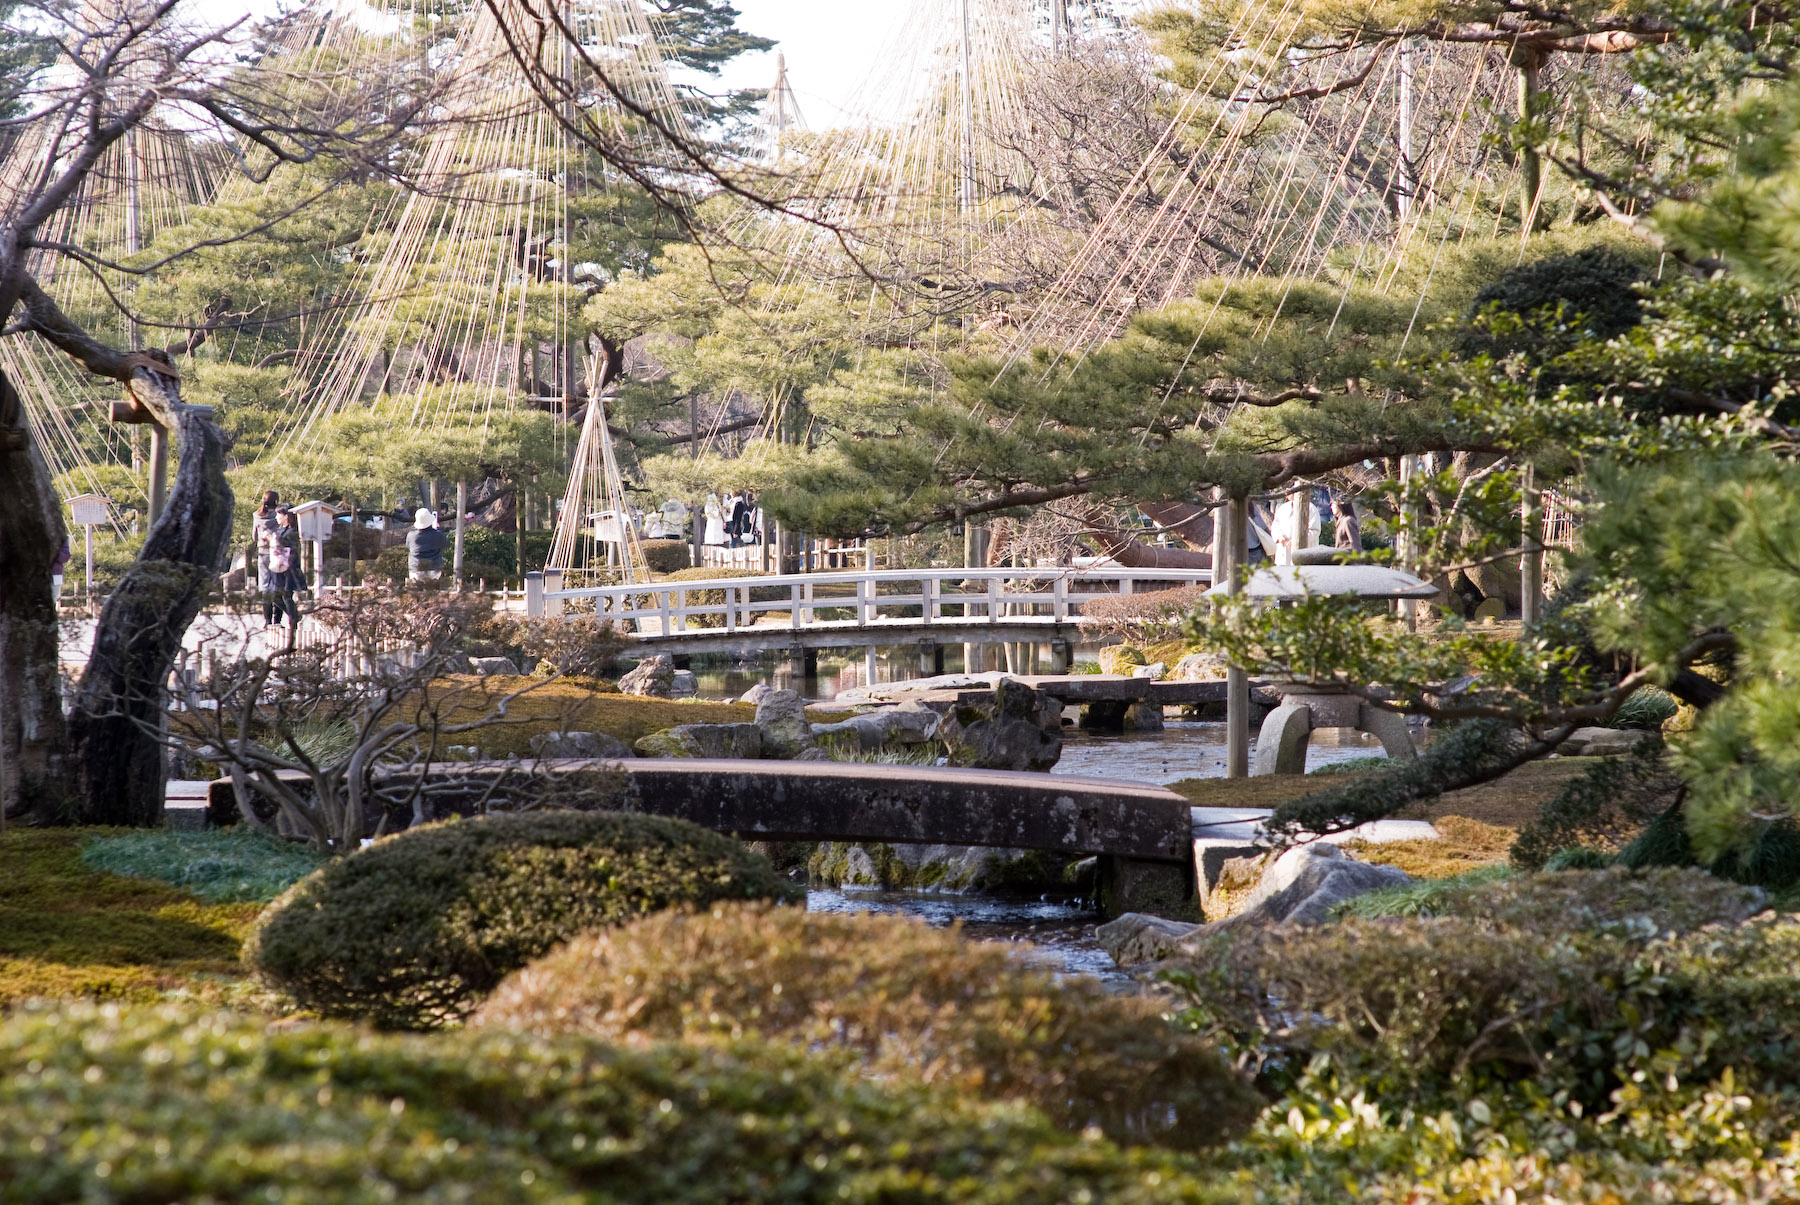 Jeffrey Friedls Blog » Out of Season: Kenrokuen Gardens of Kanazawa